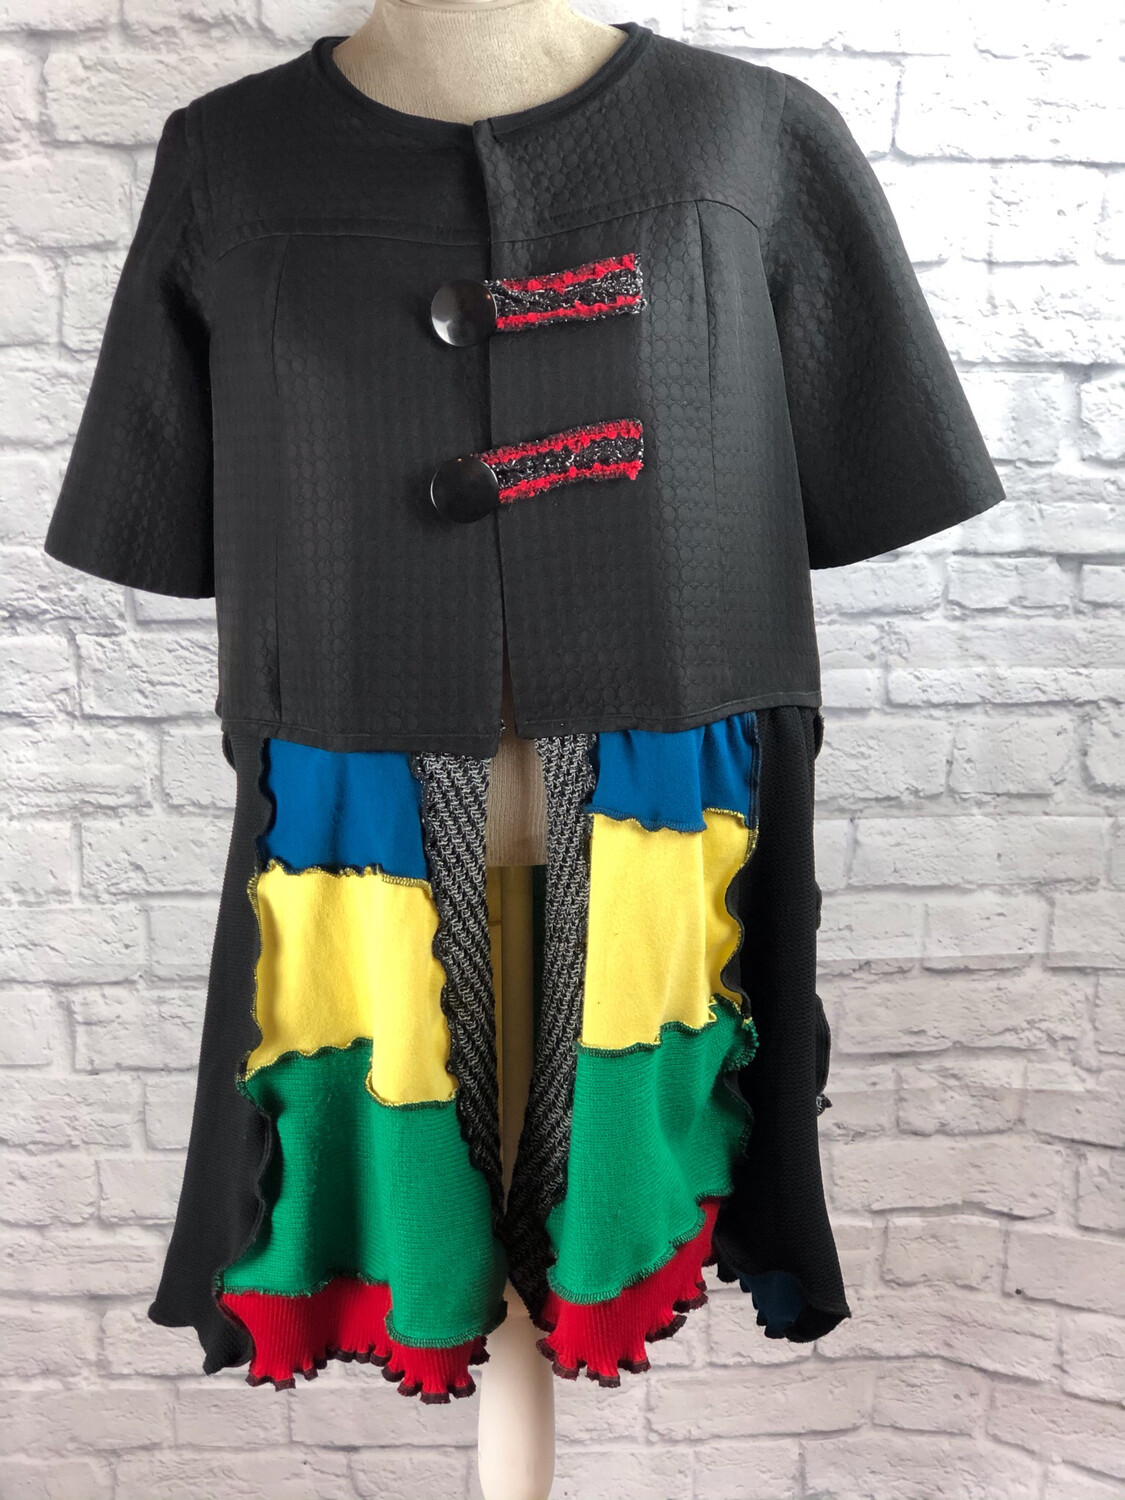 S Threads Recycled Sweater Short Sleeve Button Up Jacket Size XL